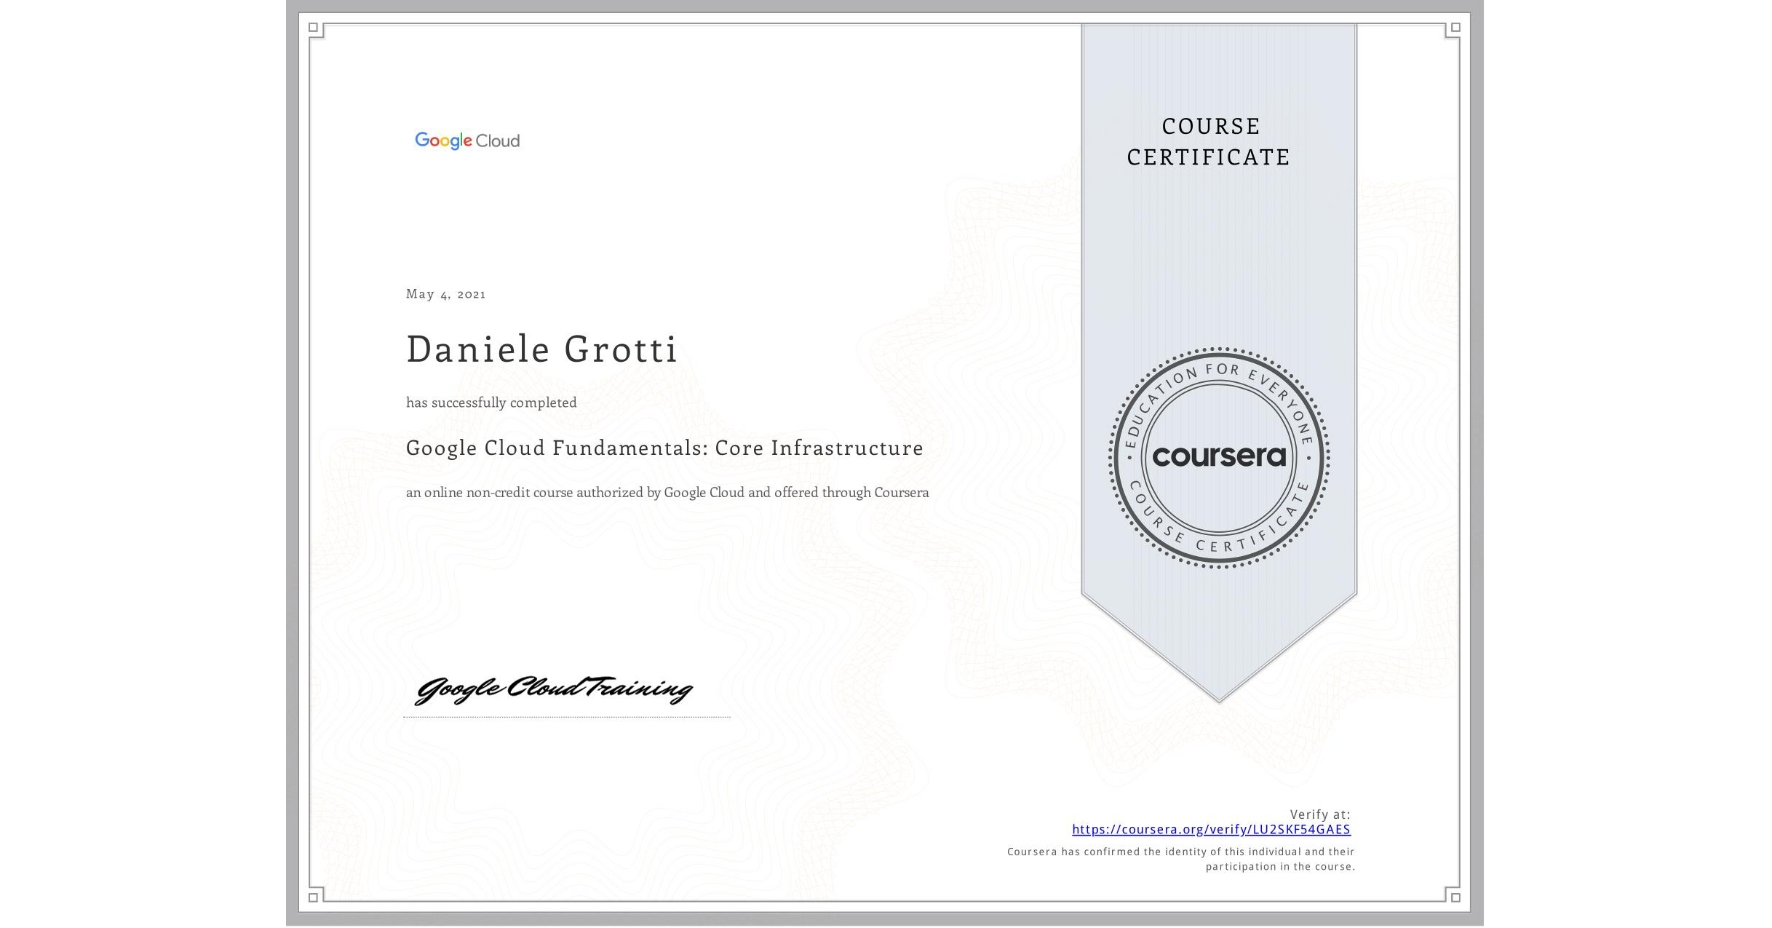 View certificate for Daniele Grotti, Google Cloud Fundamentals: Core Infrastructure, an online non-credit course authorized by Google Cloud and offered through Coursera